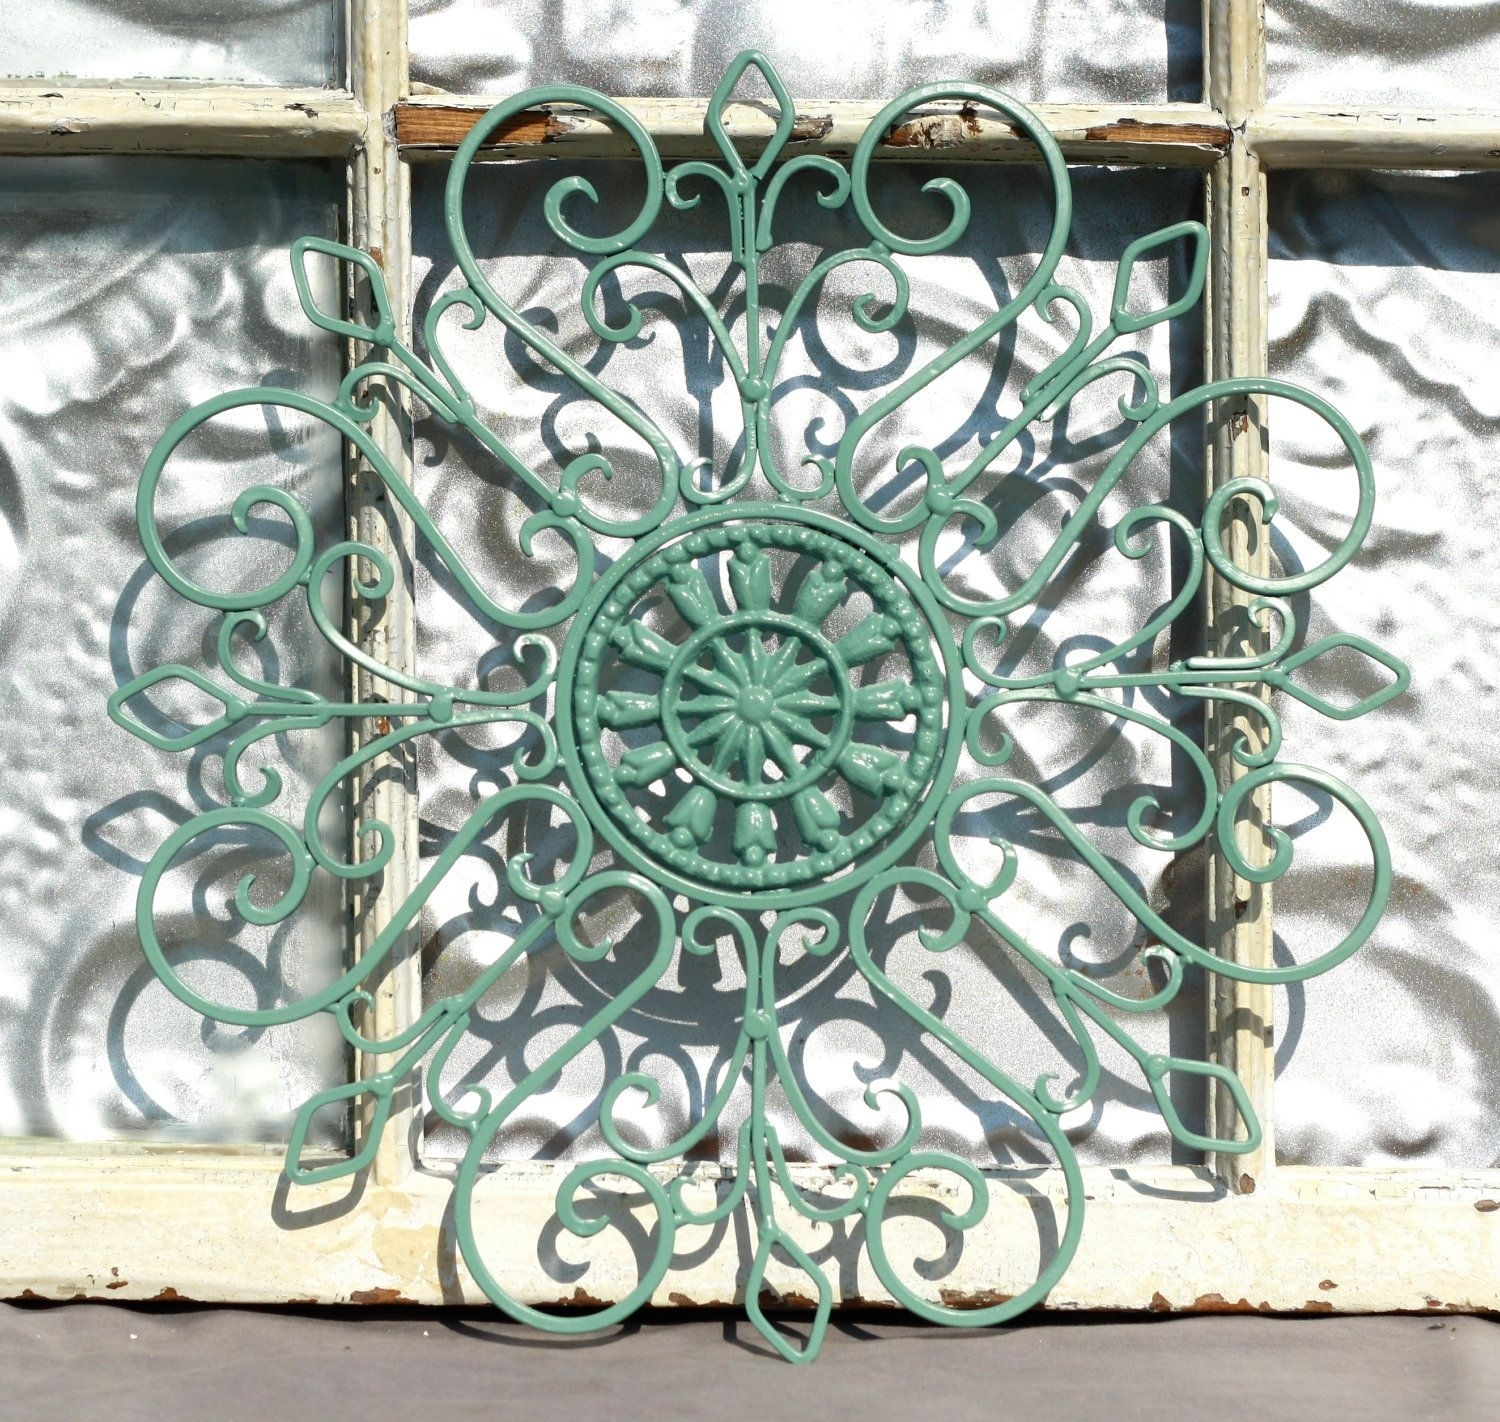 Wrought Iron Wall Decor/ Metal Wall Hanging/ Indoor/ Outdoor Metal Inside Metal Wall Art Decors (View 20 of 20)